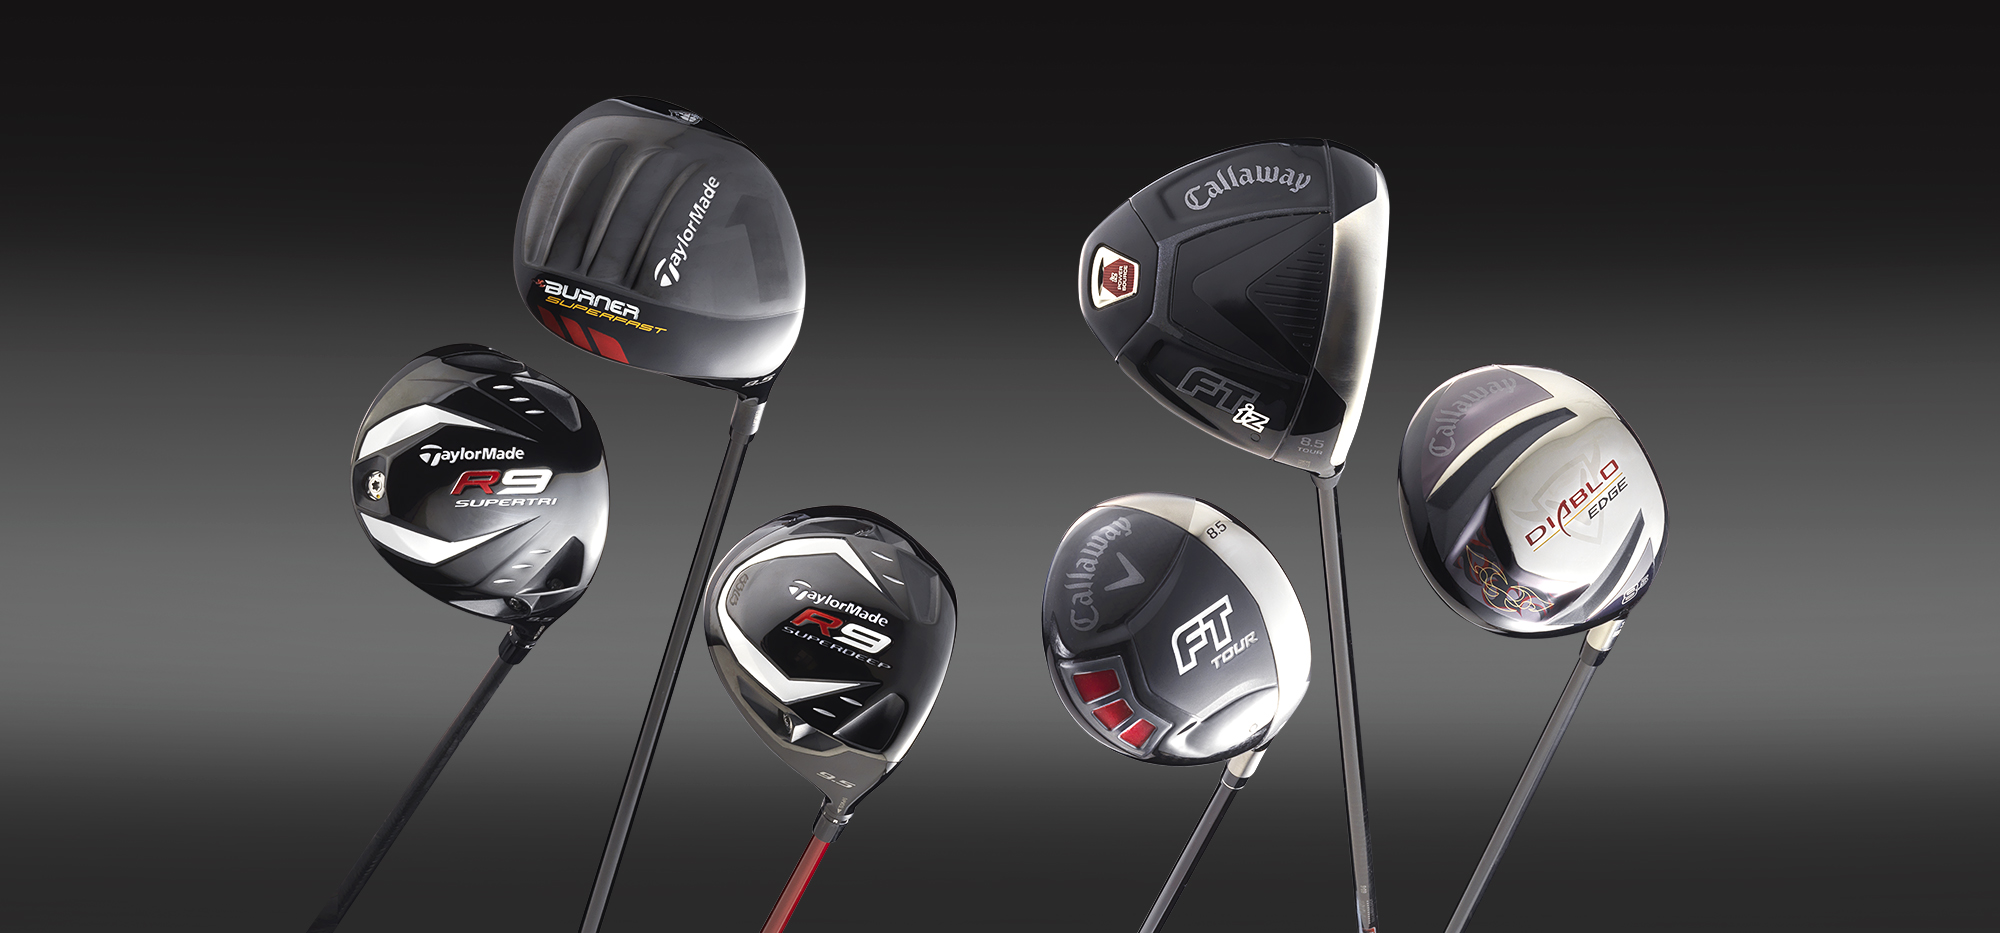 GROUP OF GOLF CLUBS.jpg